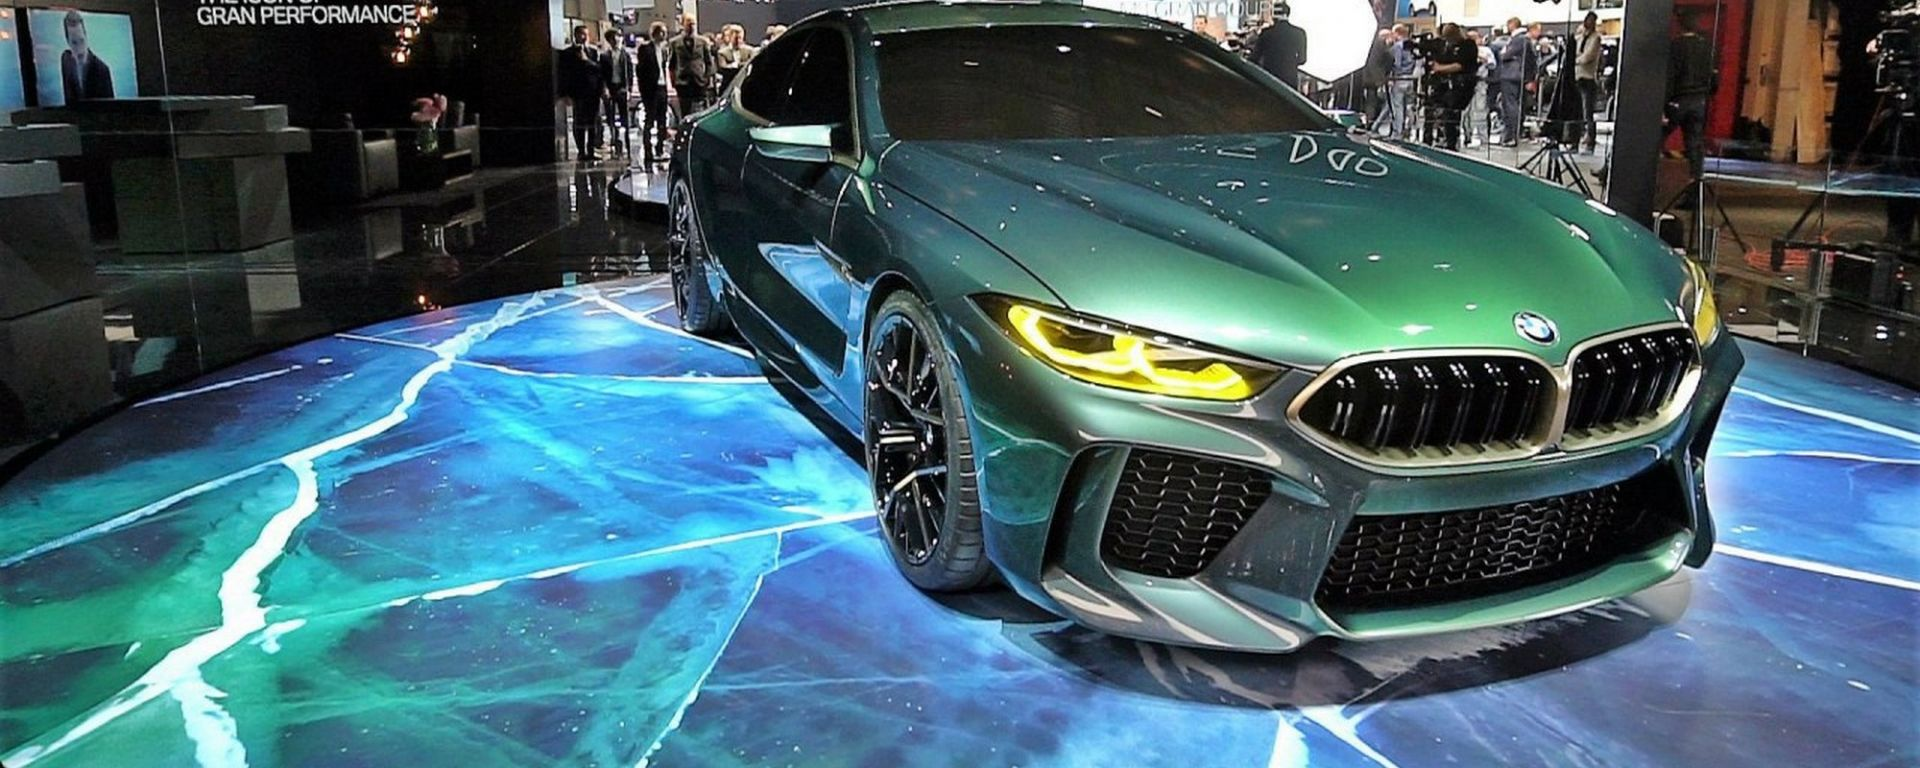 BMW M8 Gran Coupé Concept: in video dal Salone di Ginevra 2018